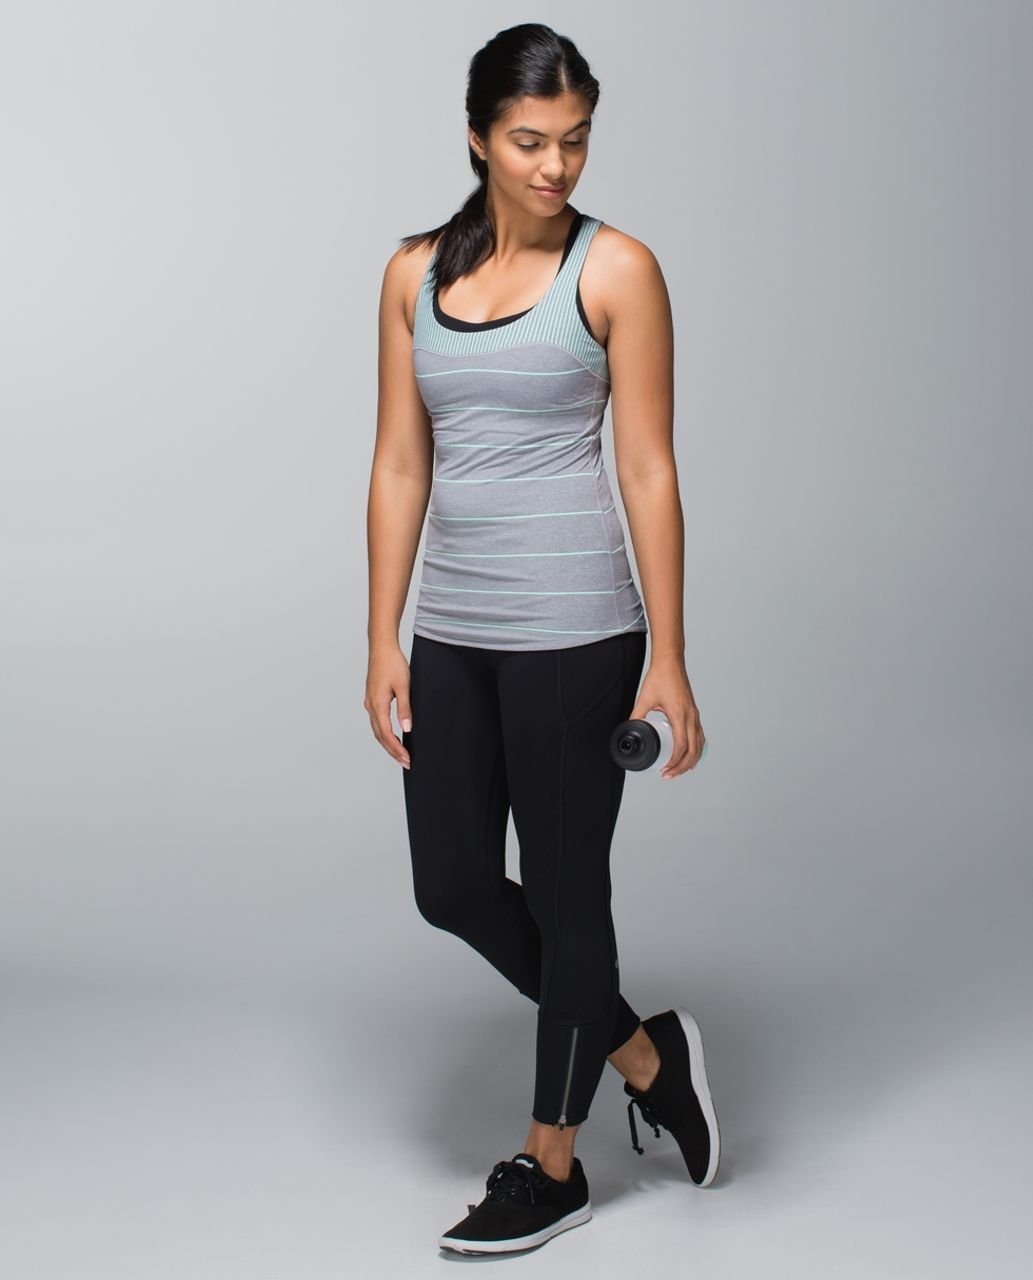 Lululemon Run:  First Base Tank - Cliff Hanger Stripe Heathered Slate Toothpaste Horizontal / Hyper Stripe Heathered Slate Toothpaste